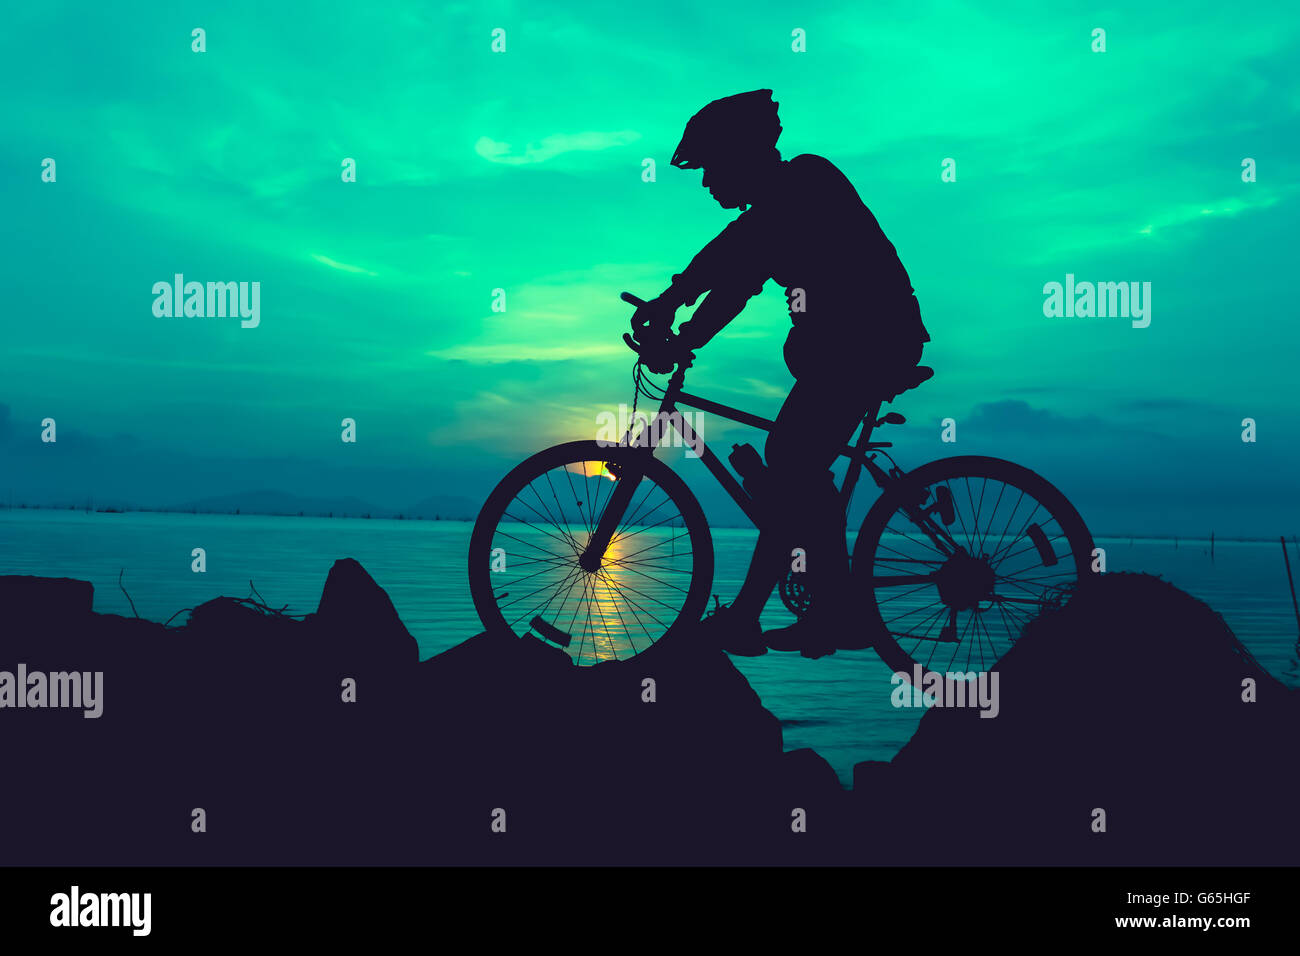 Silhouette of bicyclist riding the bike on a rocky trail at seaside, on colorful sunset sky background. Active outdoors - Stock Image